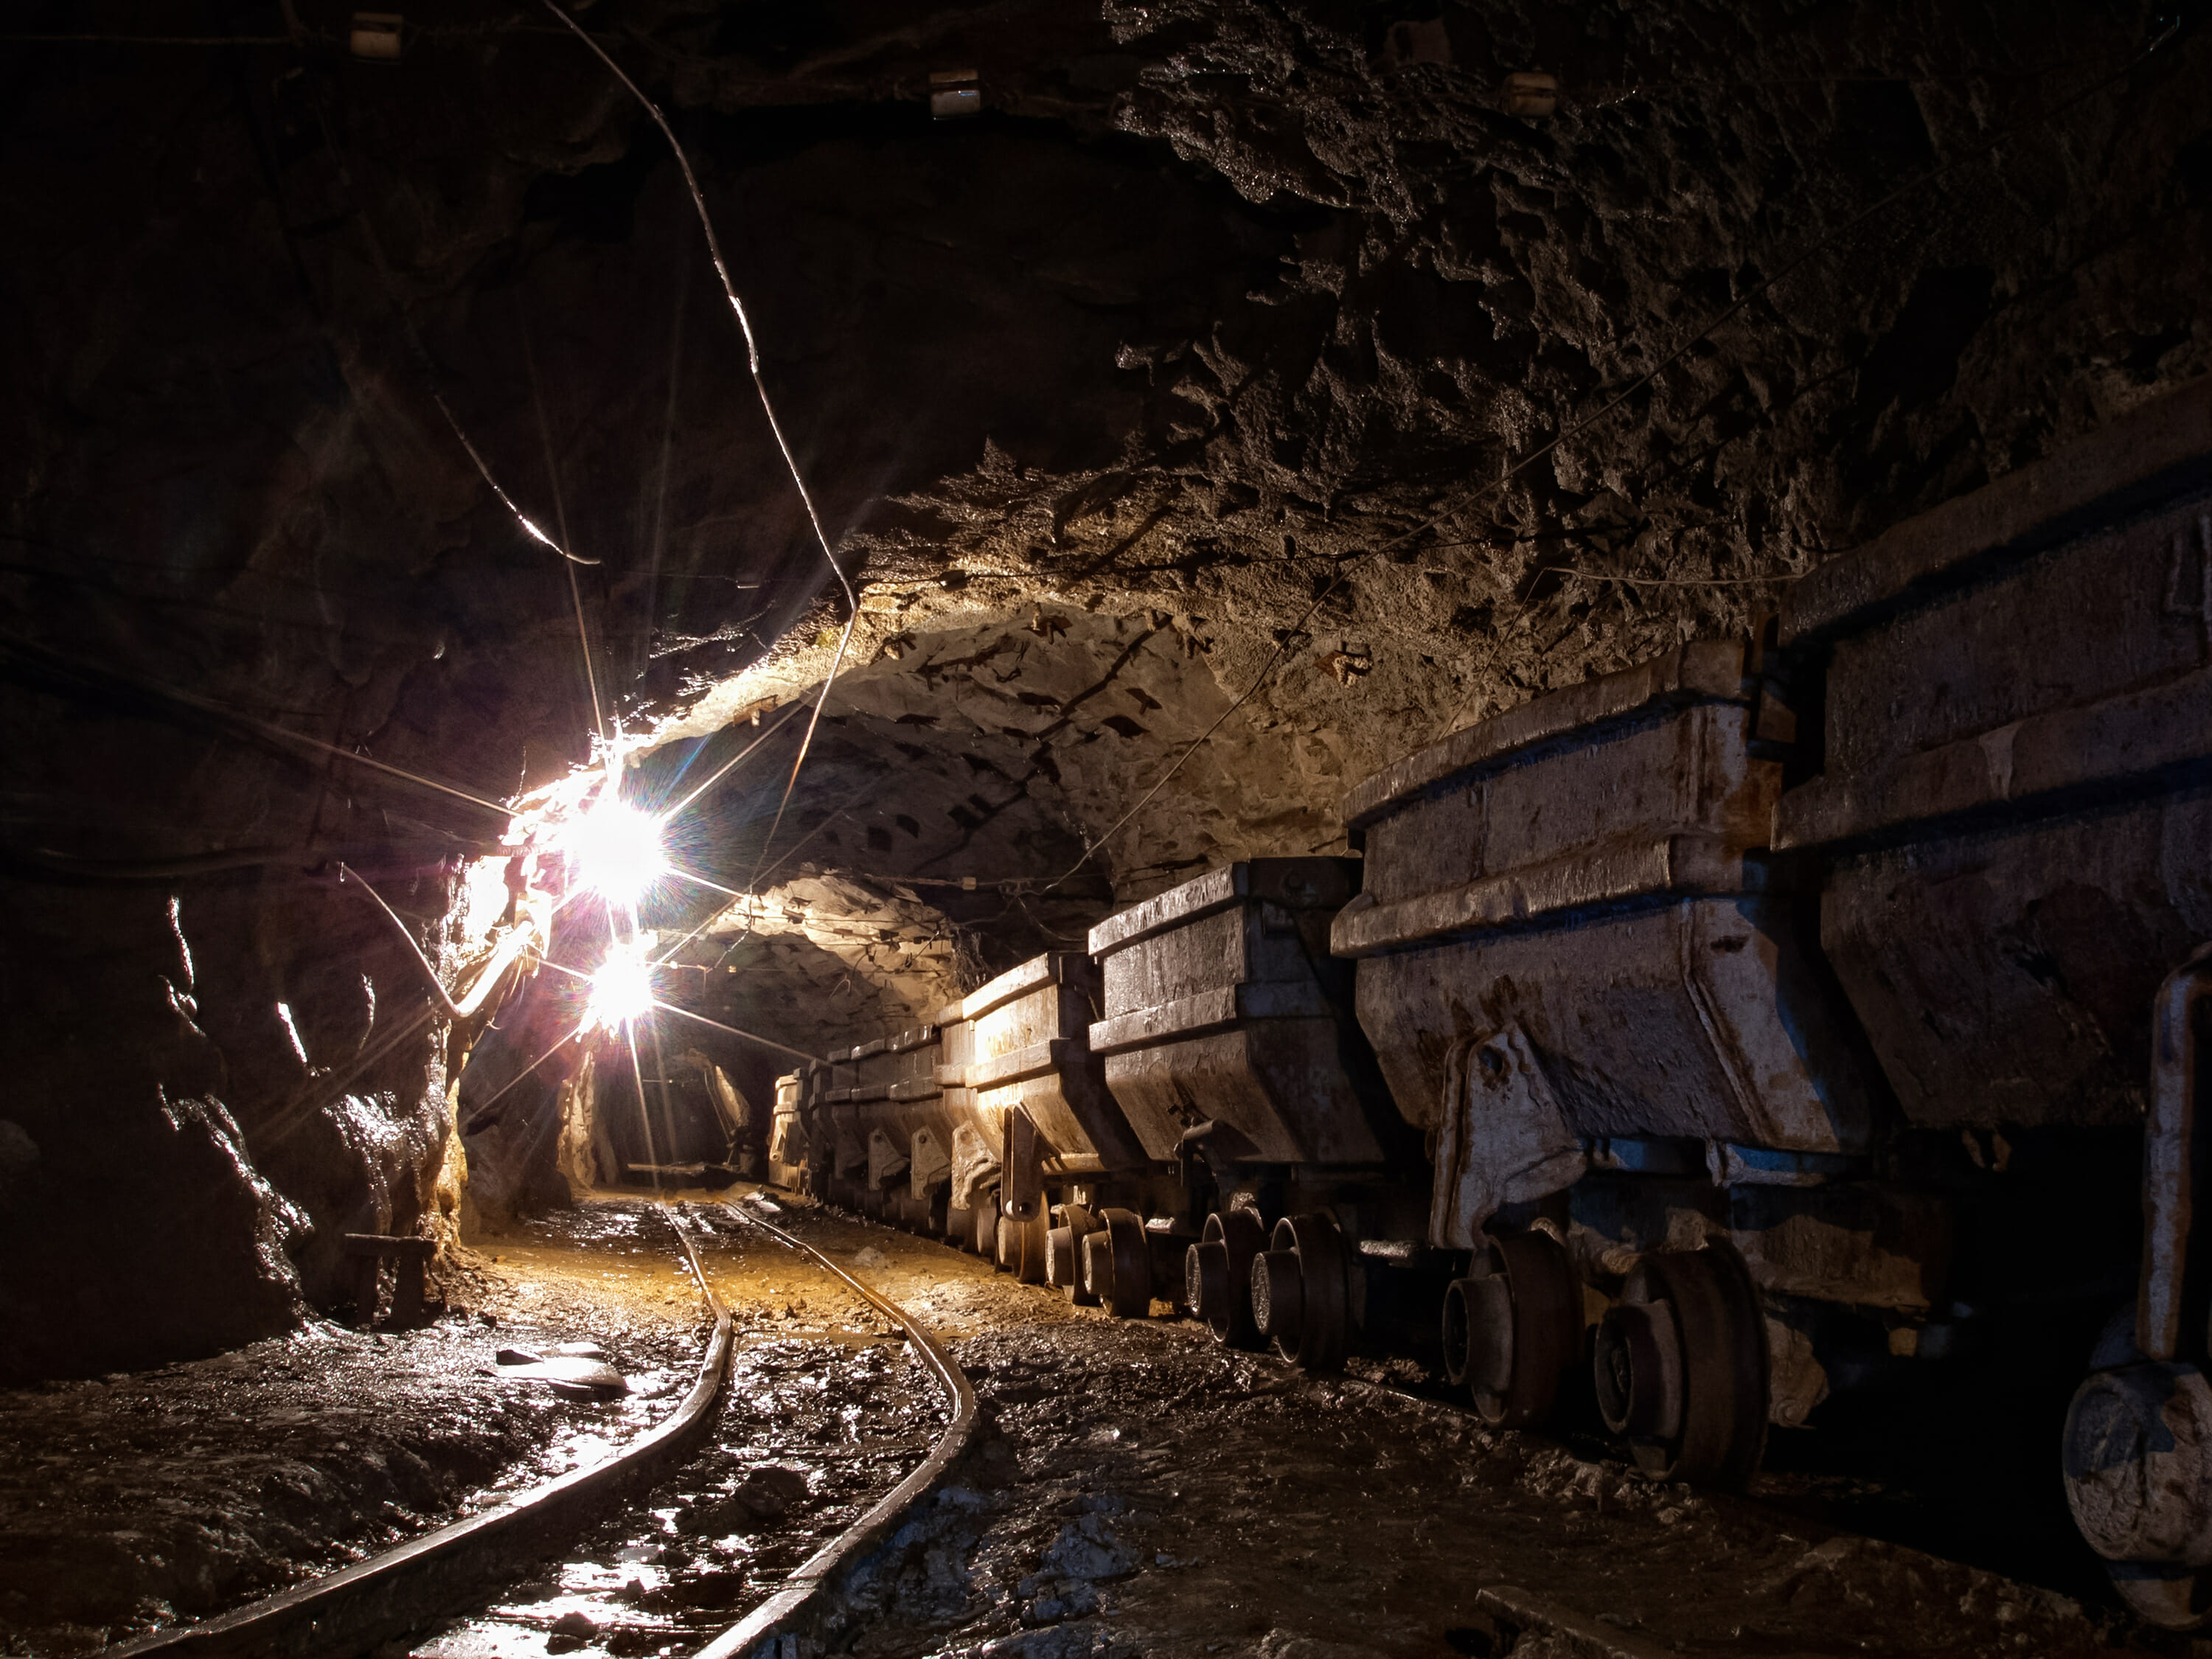 Underground Mine Pilots New Technology for Better Sludge Clean Up -